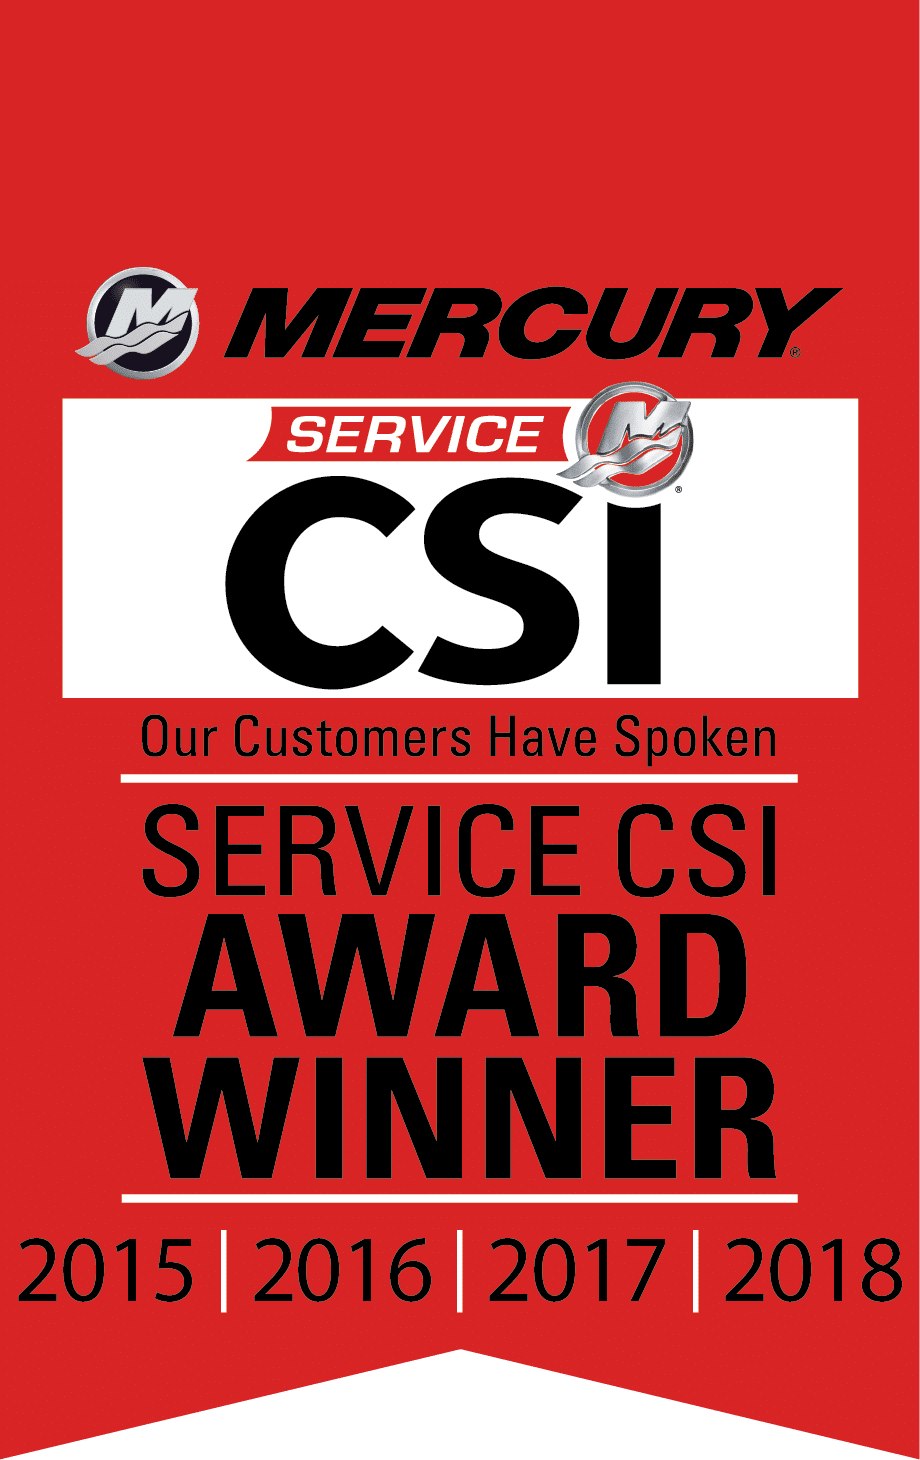 Preferred Marine CSI Award